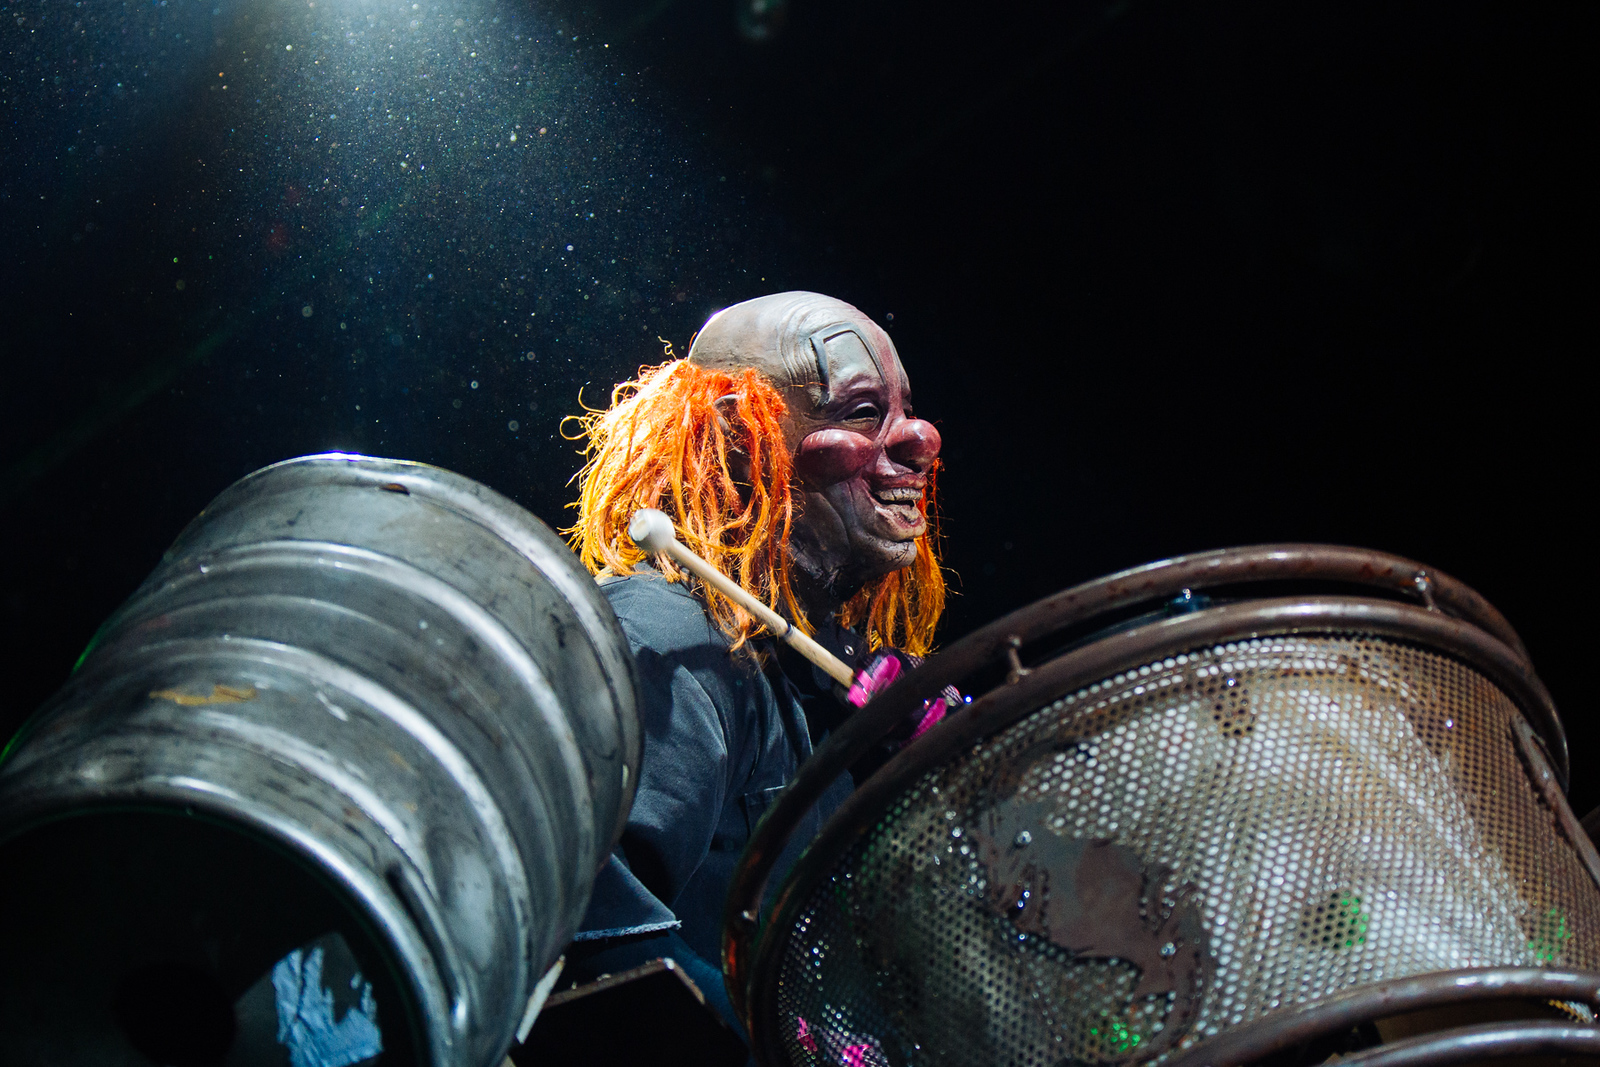 Shawn Crahan of Slipknot by Adam Elmakias at Knotfest 2015